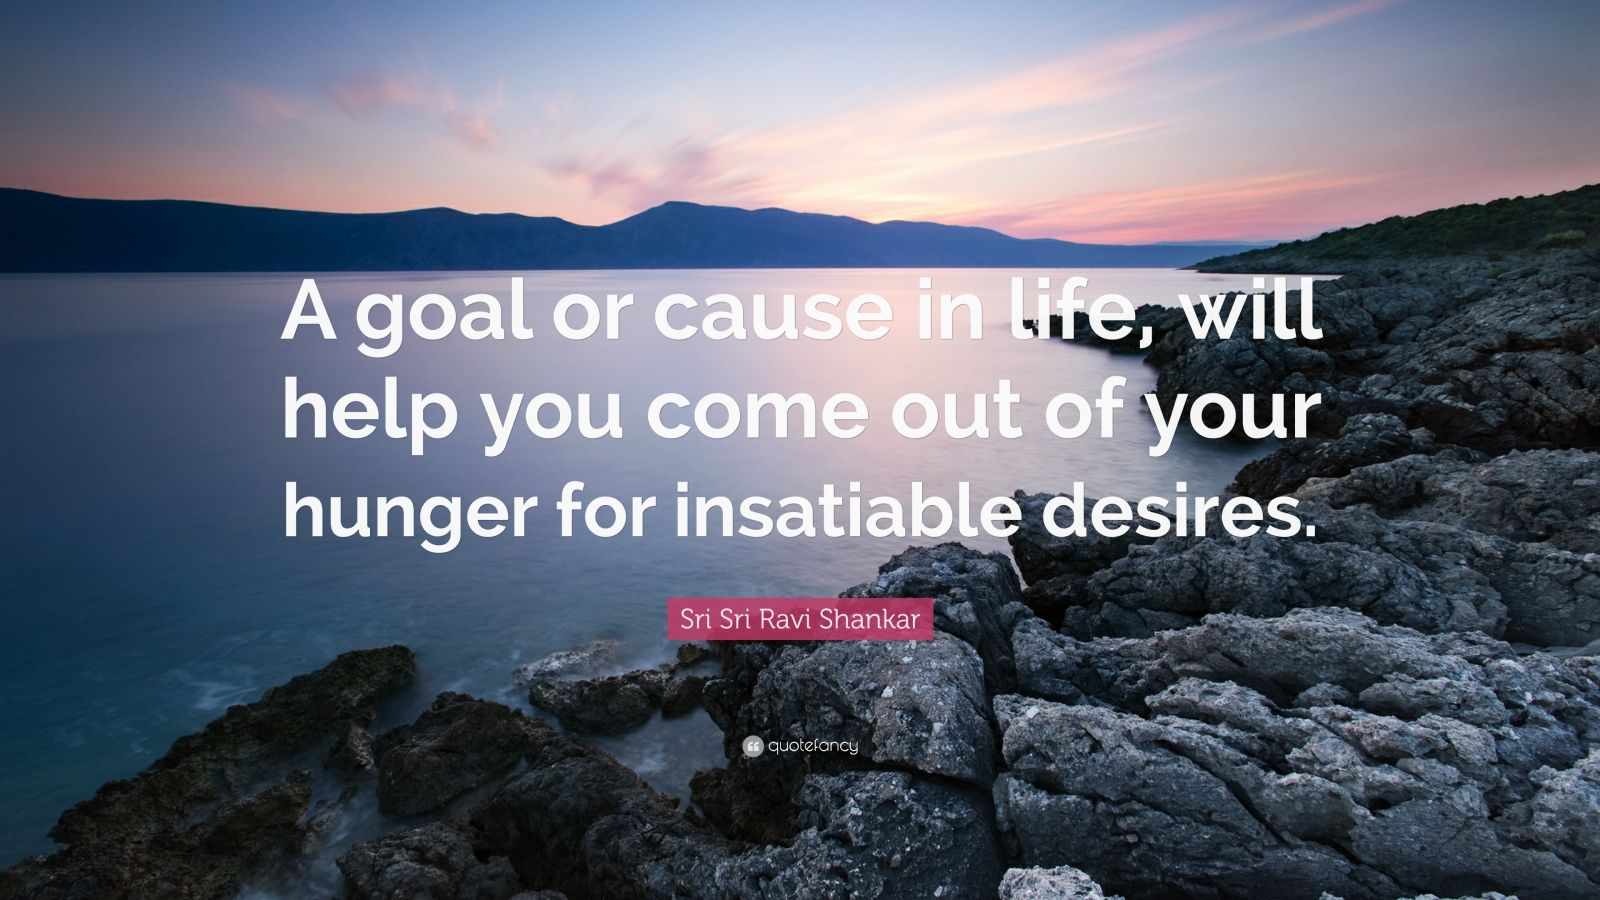 """Sri Sri Ravi Shankar Quote: """"A goal or cause in life, will help you come out of your hunger for insatiable desires."""""""